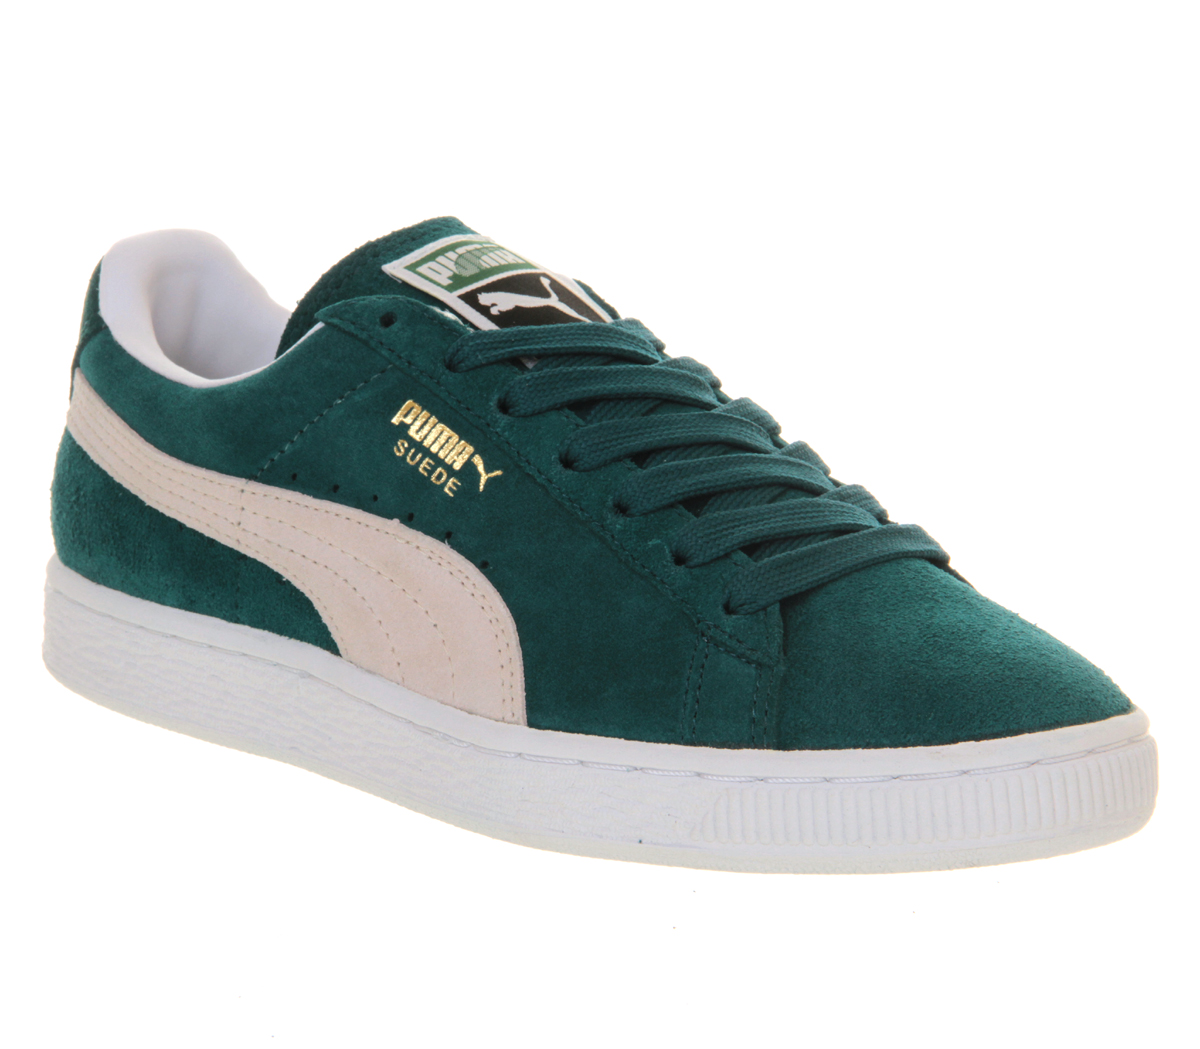 timeless design 52b21 3abb8 Puma Suede Classic Mens wearpointwindfarm.co.uk